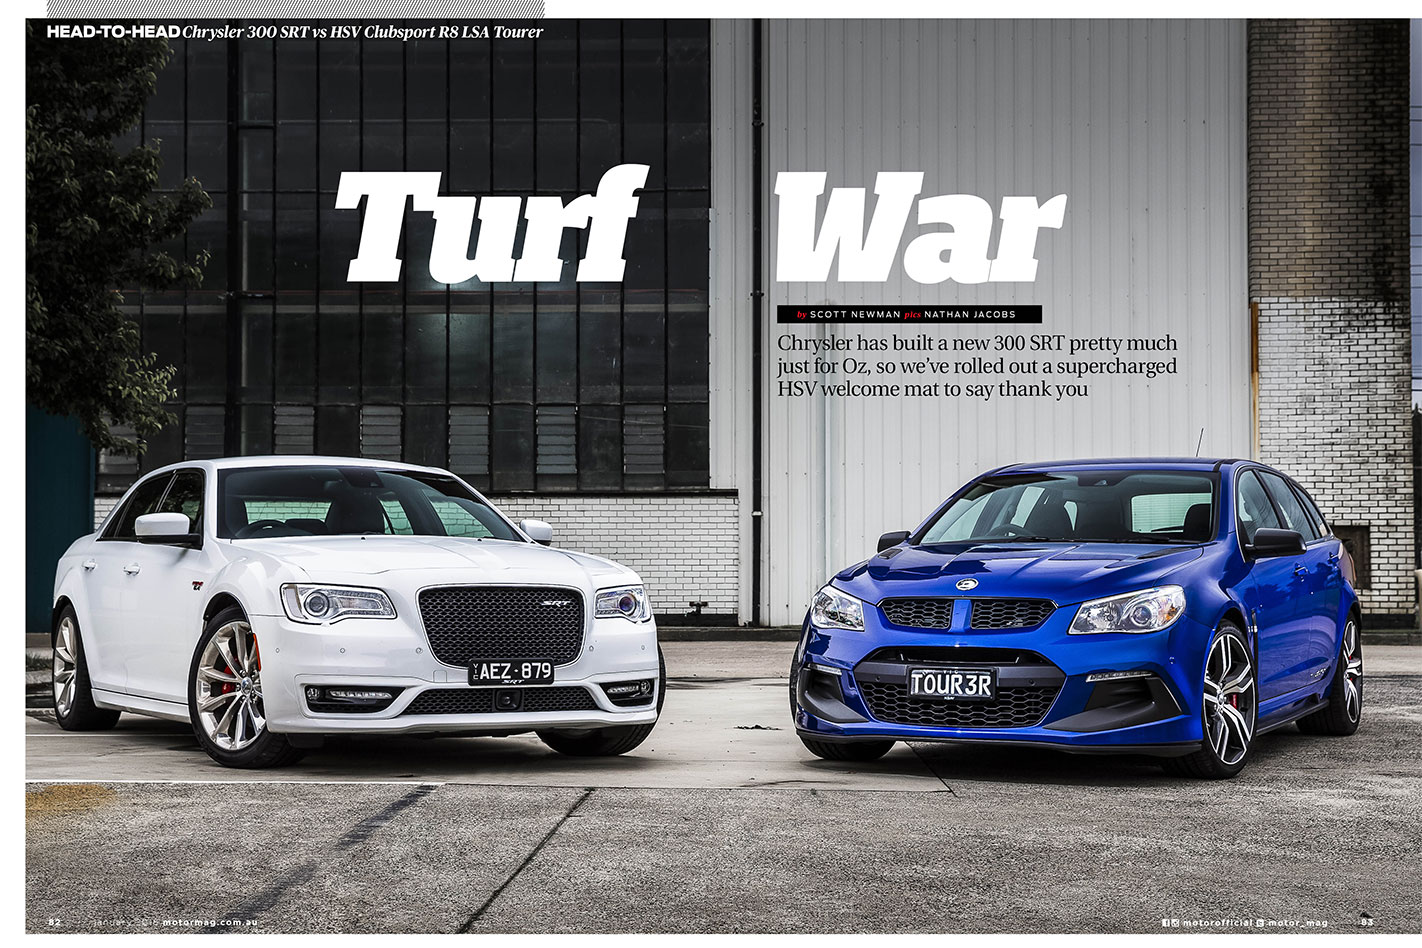 MOTOR-February -2016-Chrysler -300-SRT-vs -HSV-Clubsport -R8-LSA